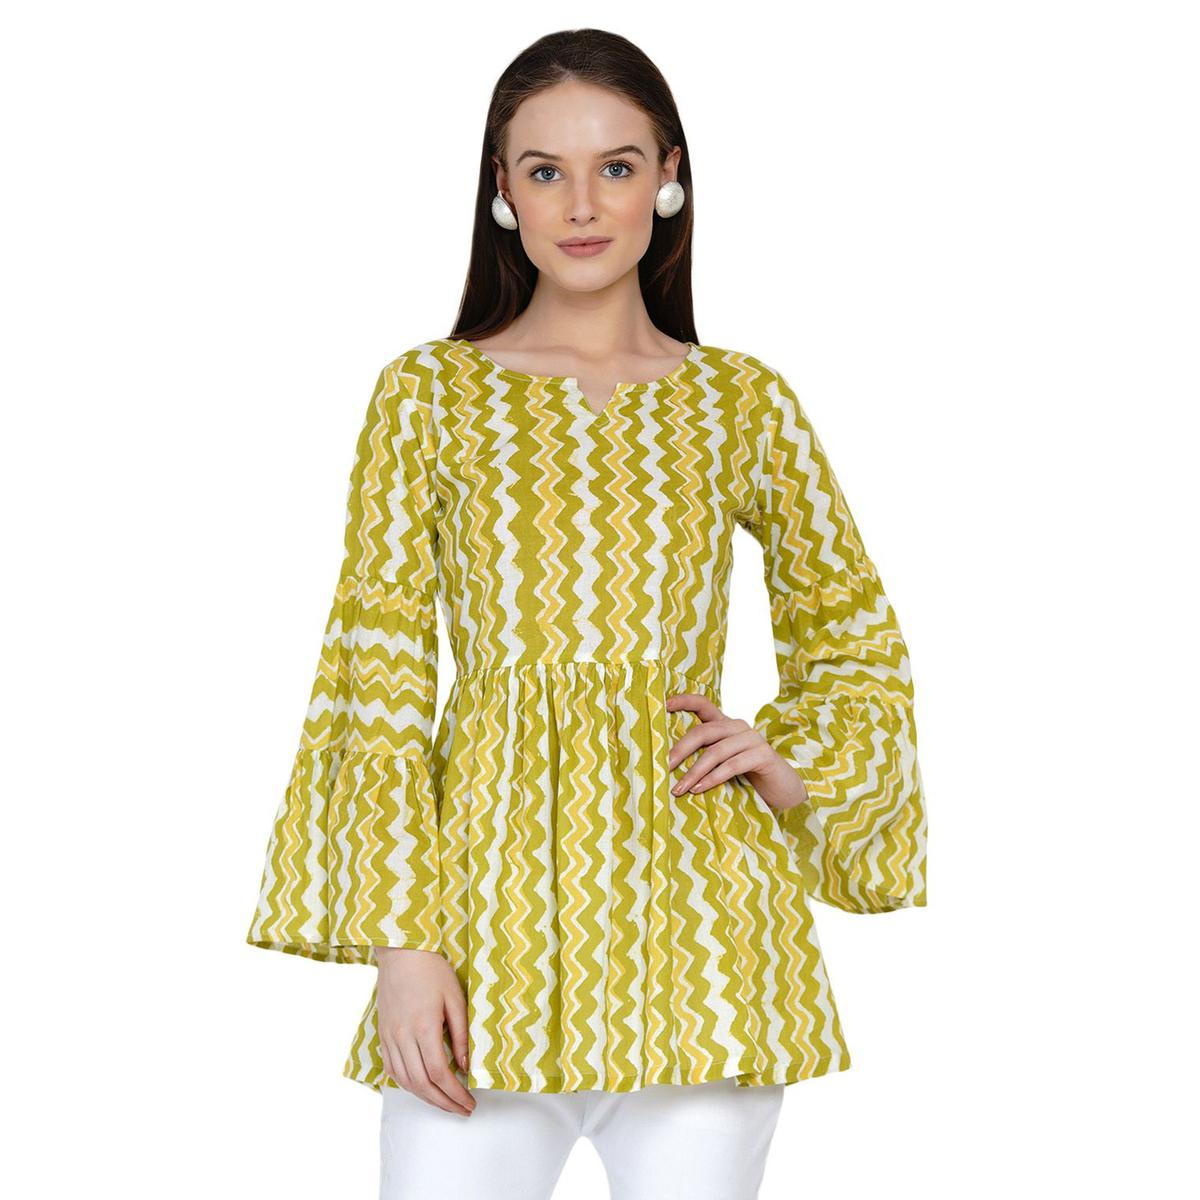 Fabnest - Women Lime Chevron Cotton Gathered Top With Tiered Sleeves